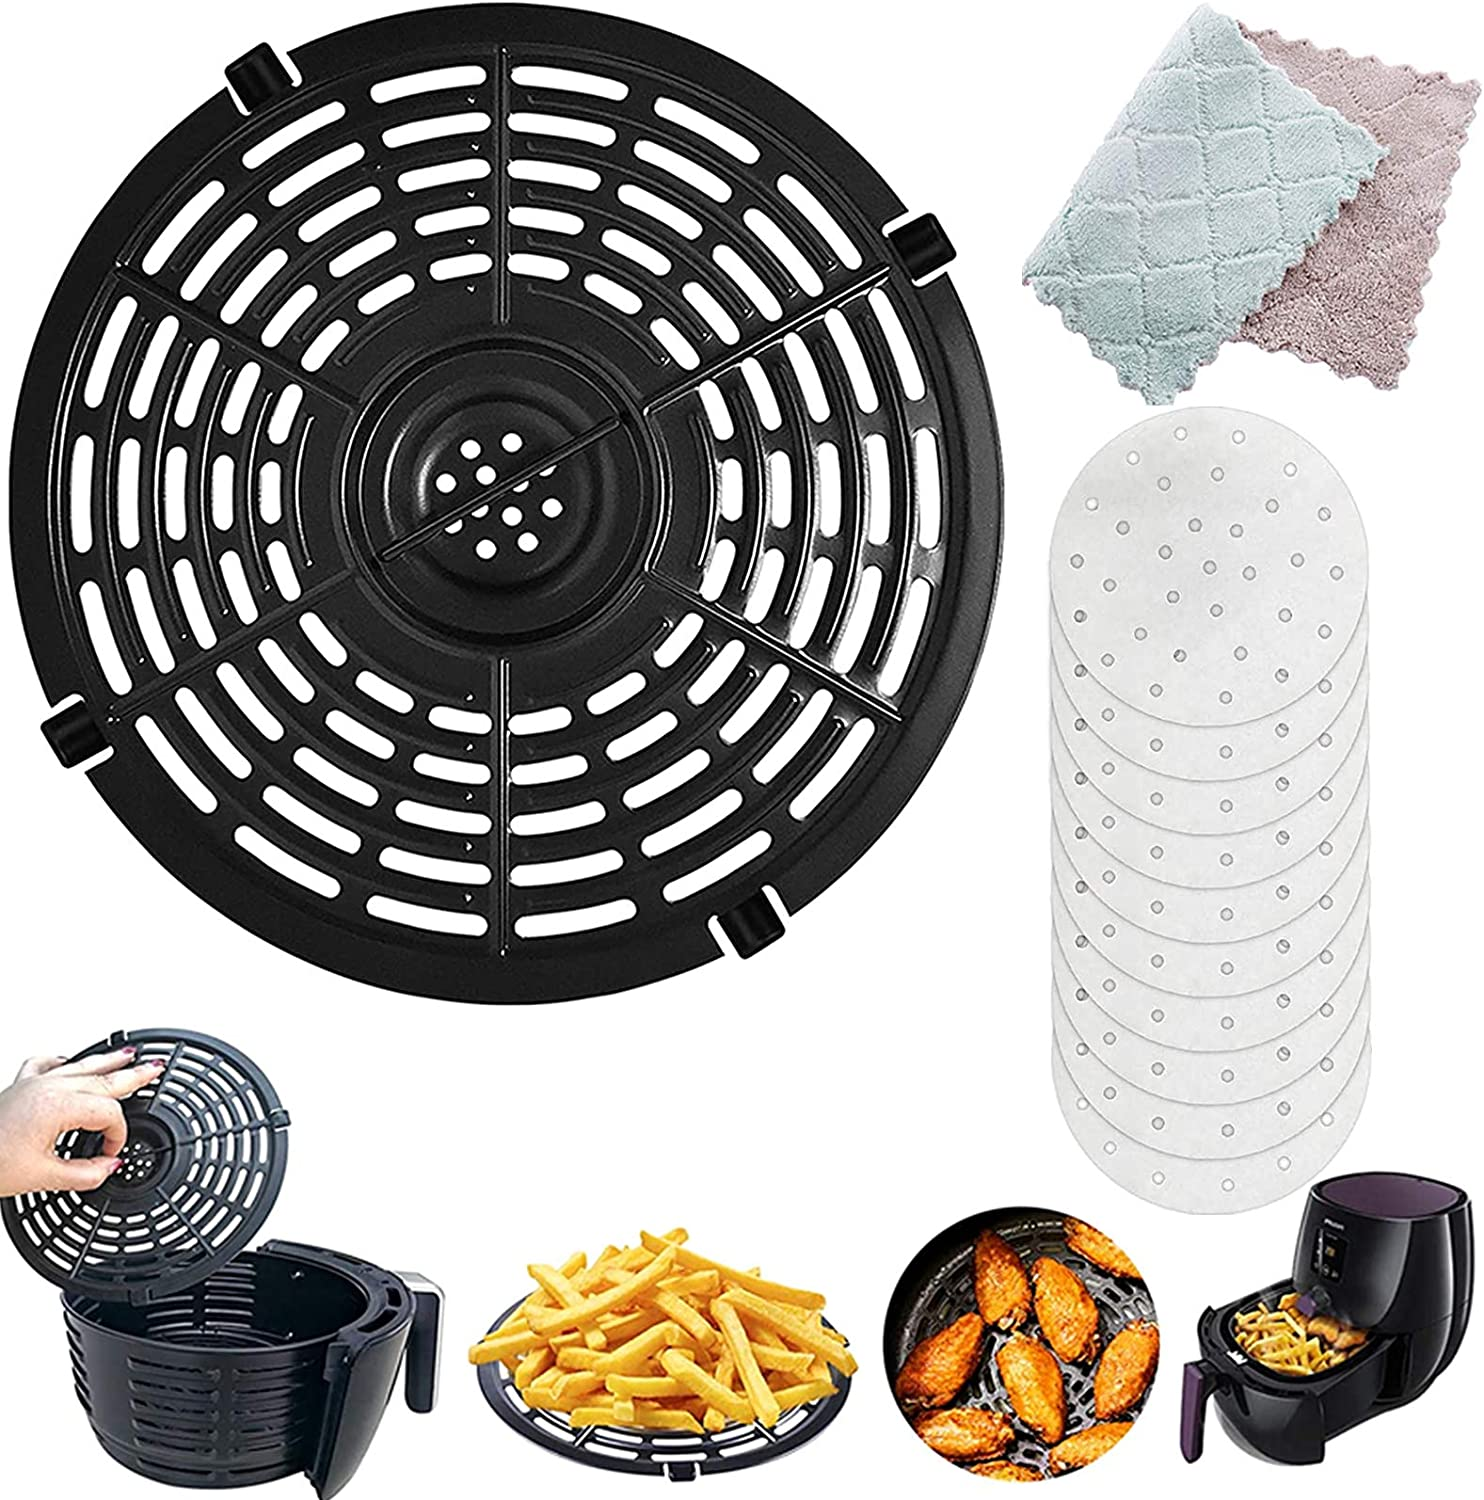 Air Fryer Replacement Grill Pan,Premium Non-Stick Round Crisper Plate for Make French Fries, Pizza, Chicken Wings and so on,Dishwasher Safe (Free cleaning cloth.Oil brush and filter paper) (166) 商品名称